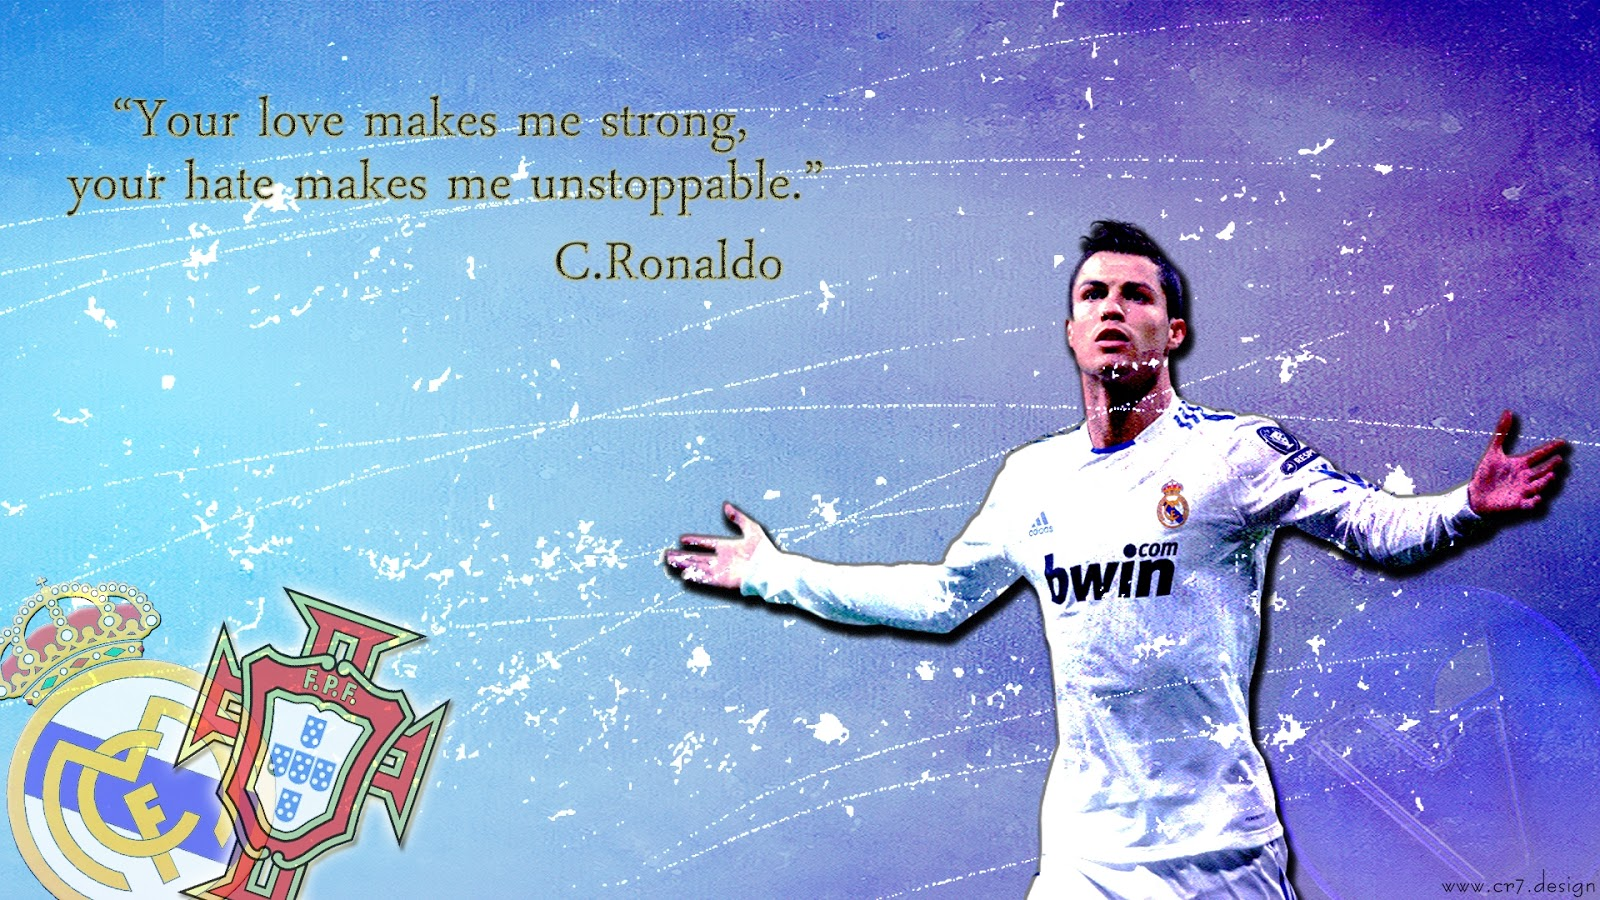 ciristiano-ronaldo-wallpaper-design-64